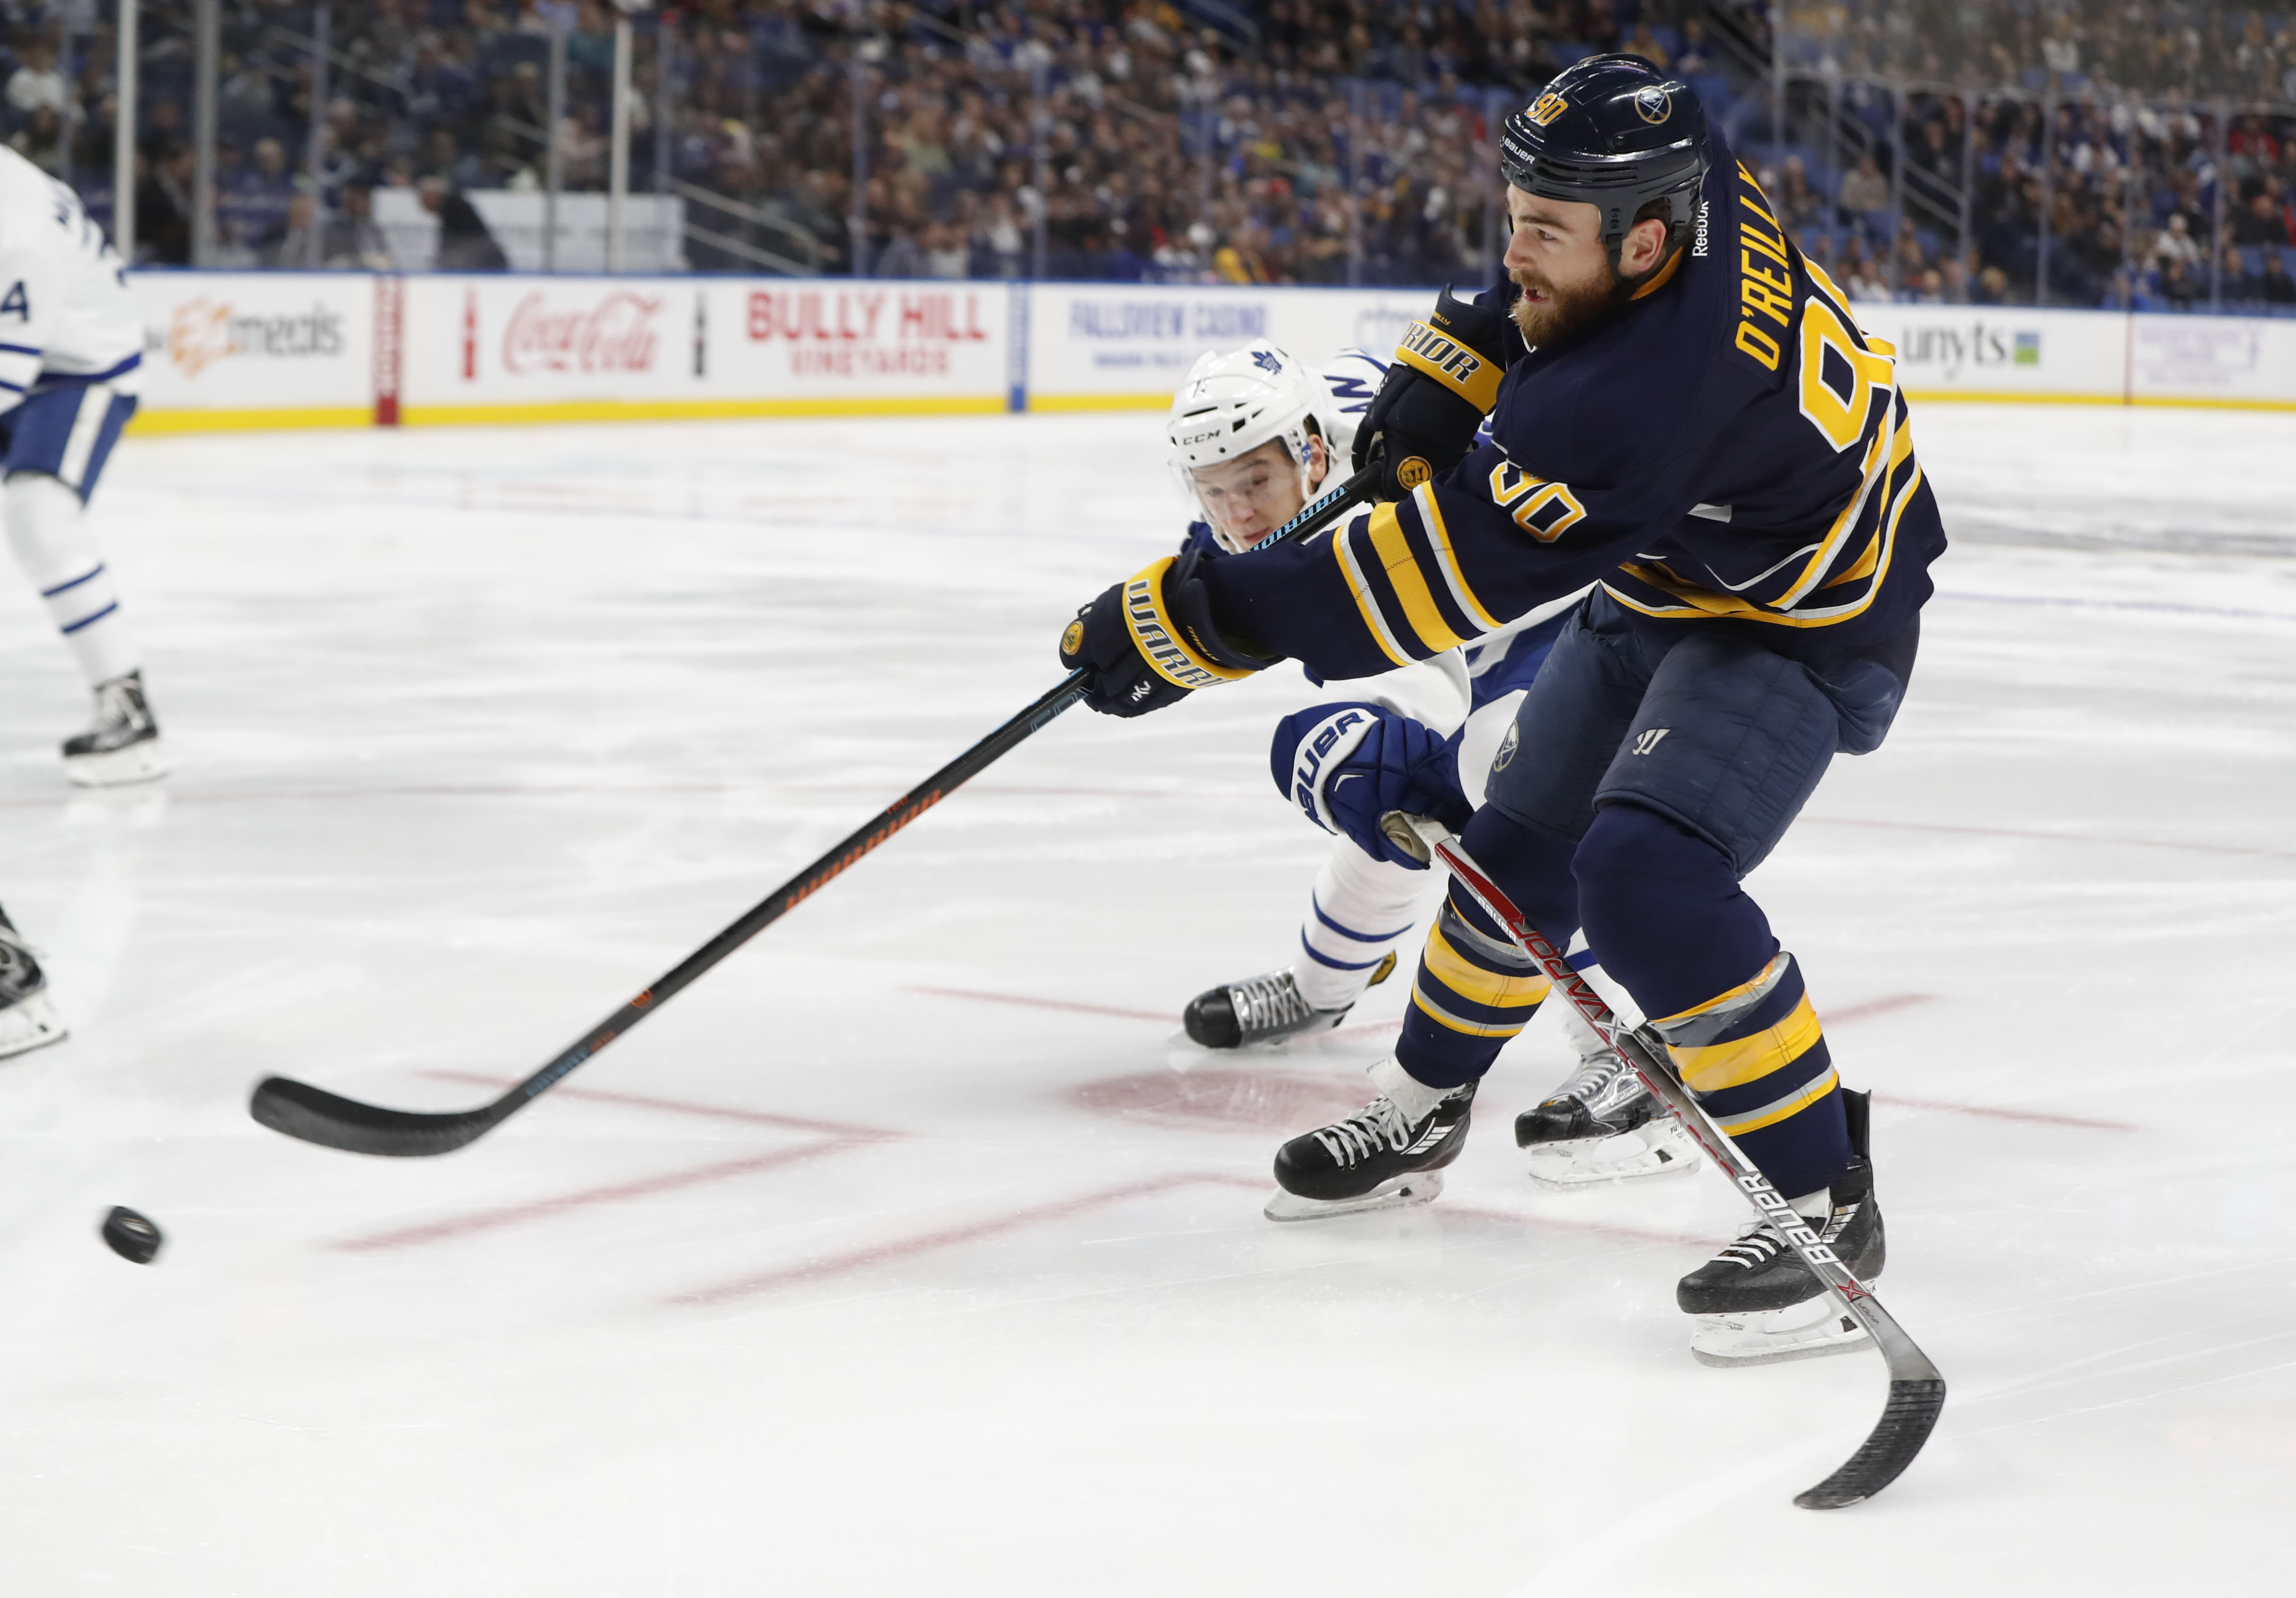 Ryan O'Reilly is likely to return to the Sabres lineup. (Harry Scull Jr./Buffalo News)